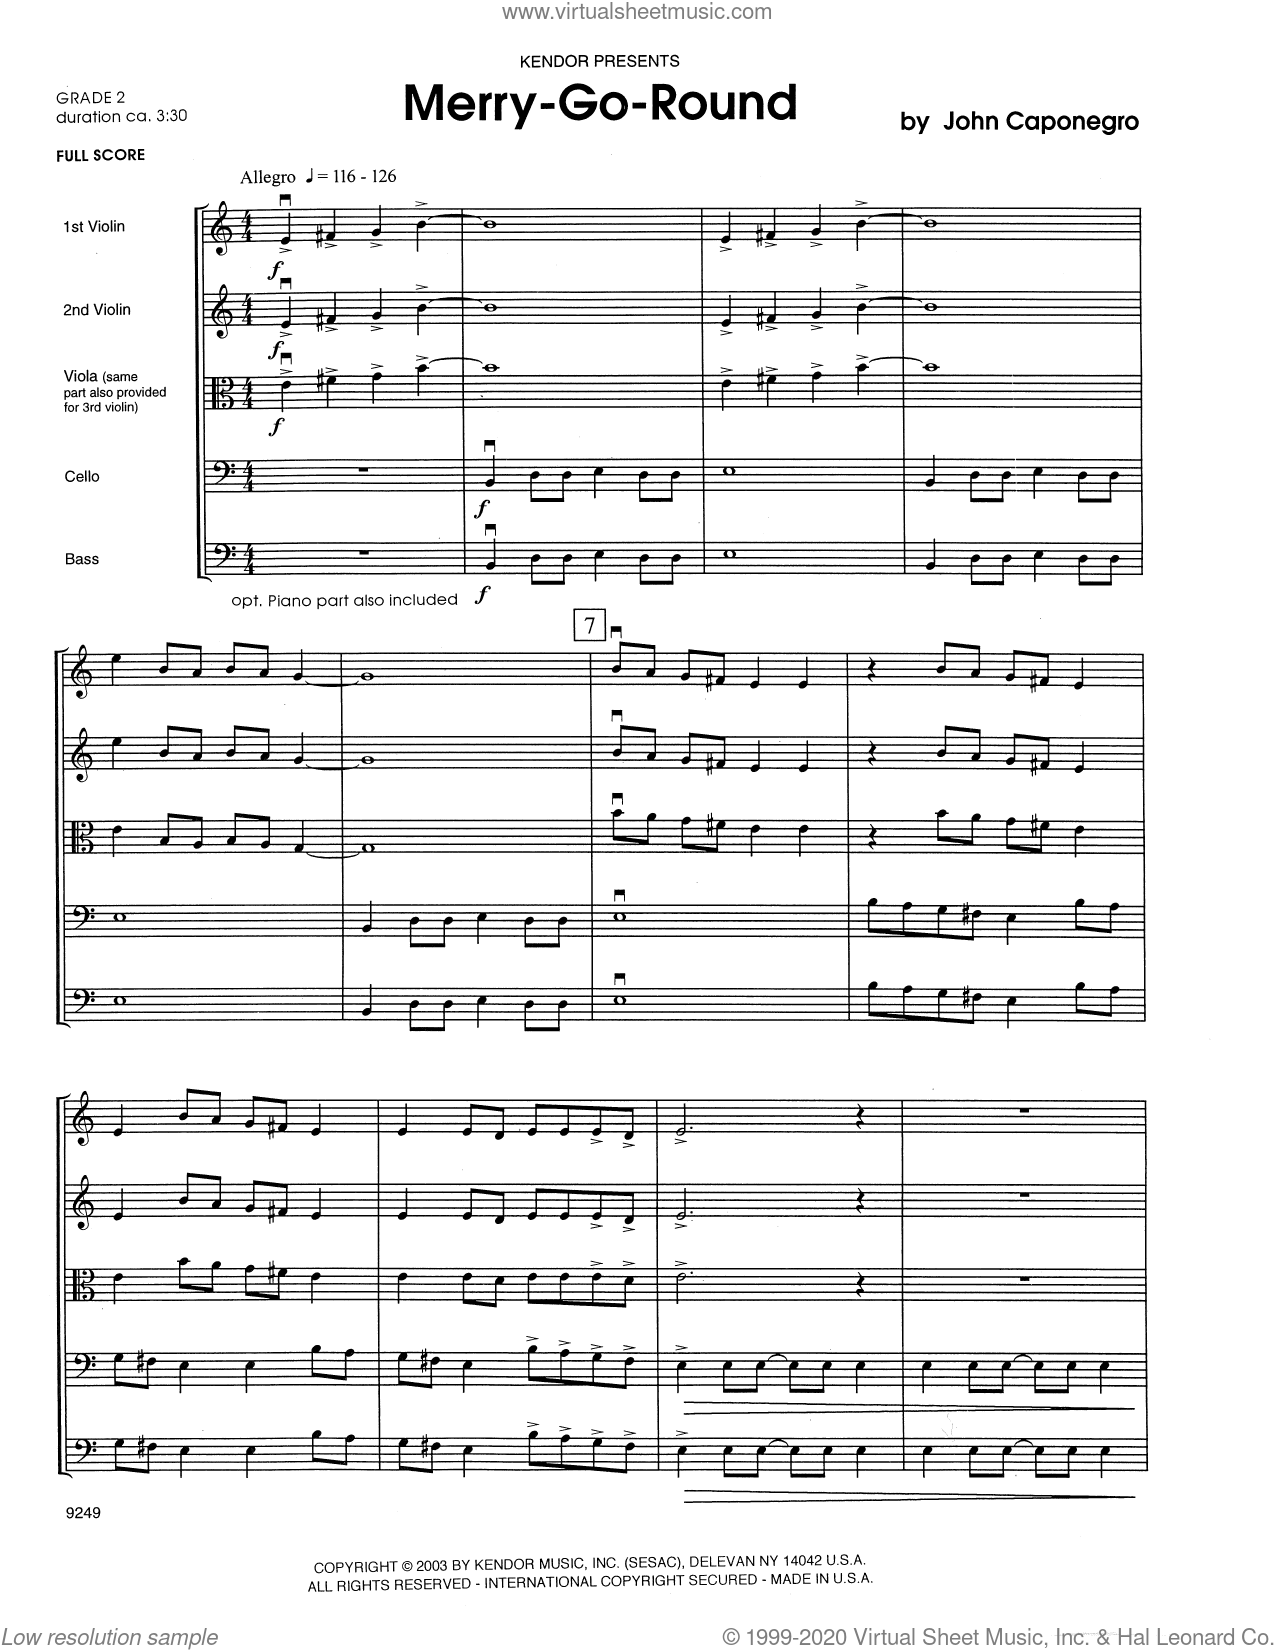 Merry-Go-Round (COMPLETE) sheet music for orchestra by John Caponegro, intermediate skill level